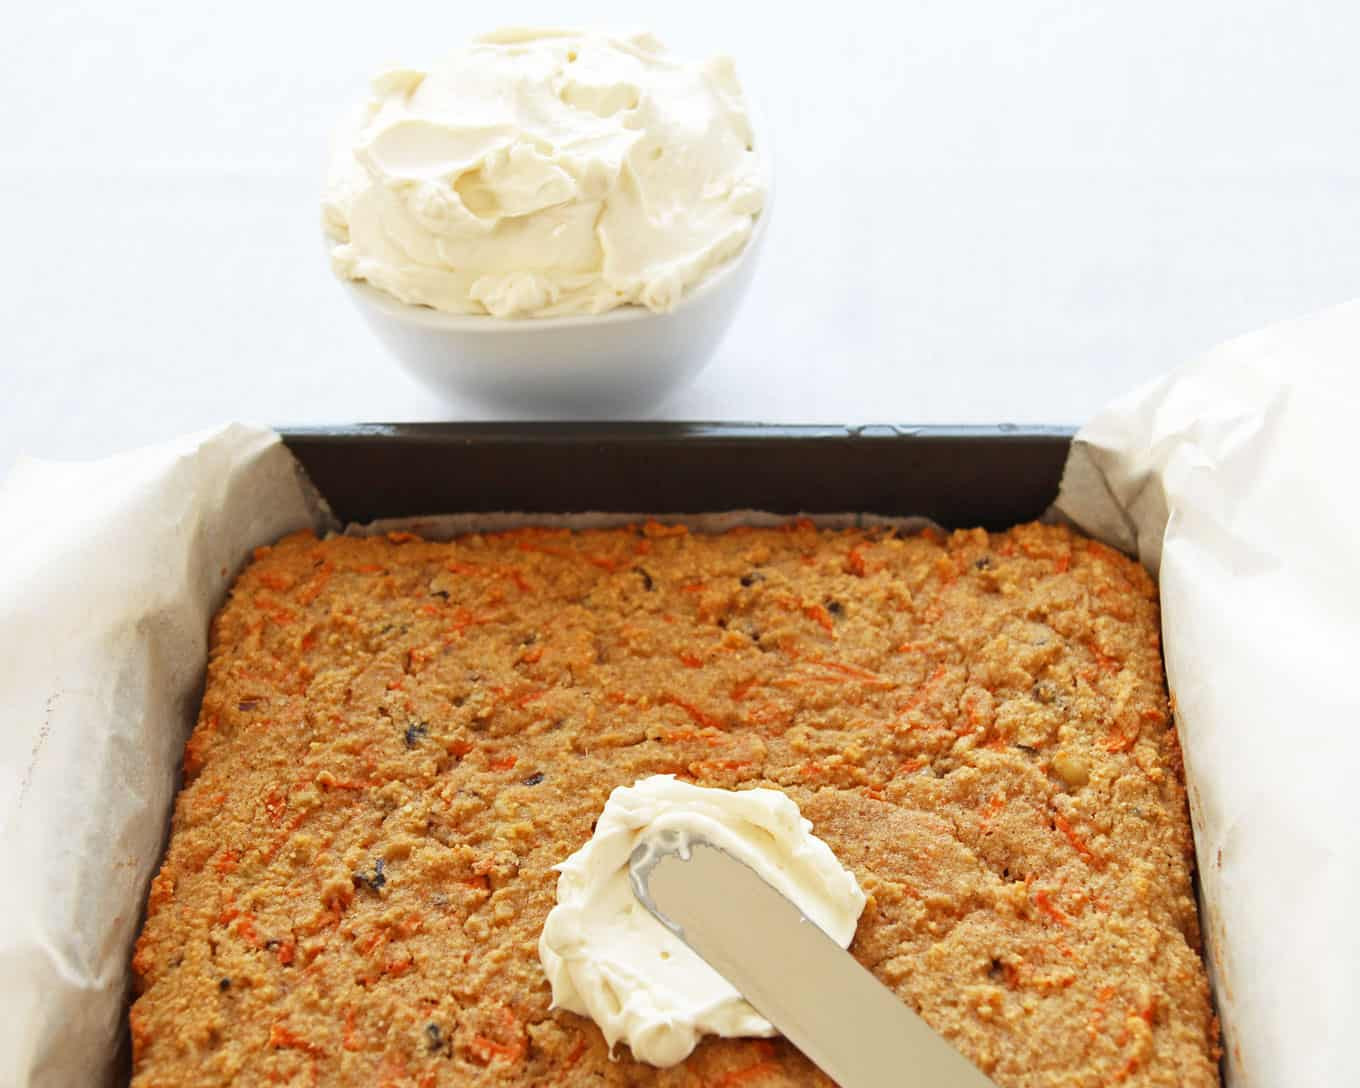 Healthy Carrot Cake Recipe With Pineapple  Healthy Carrot Cake Recipe paleo gluten free low carb